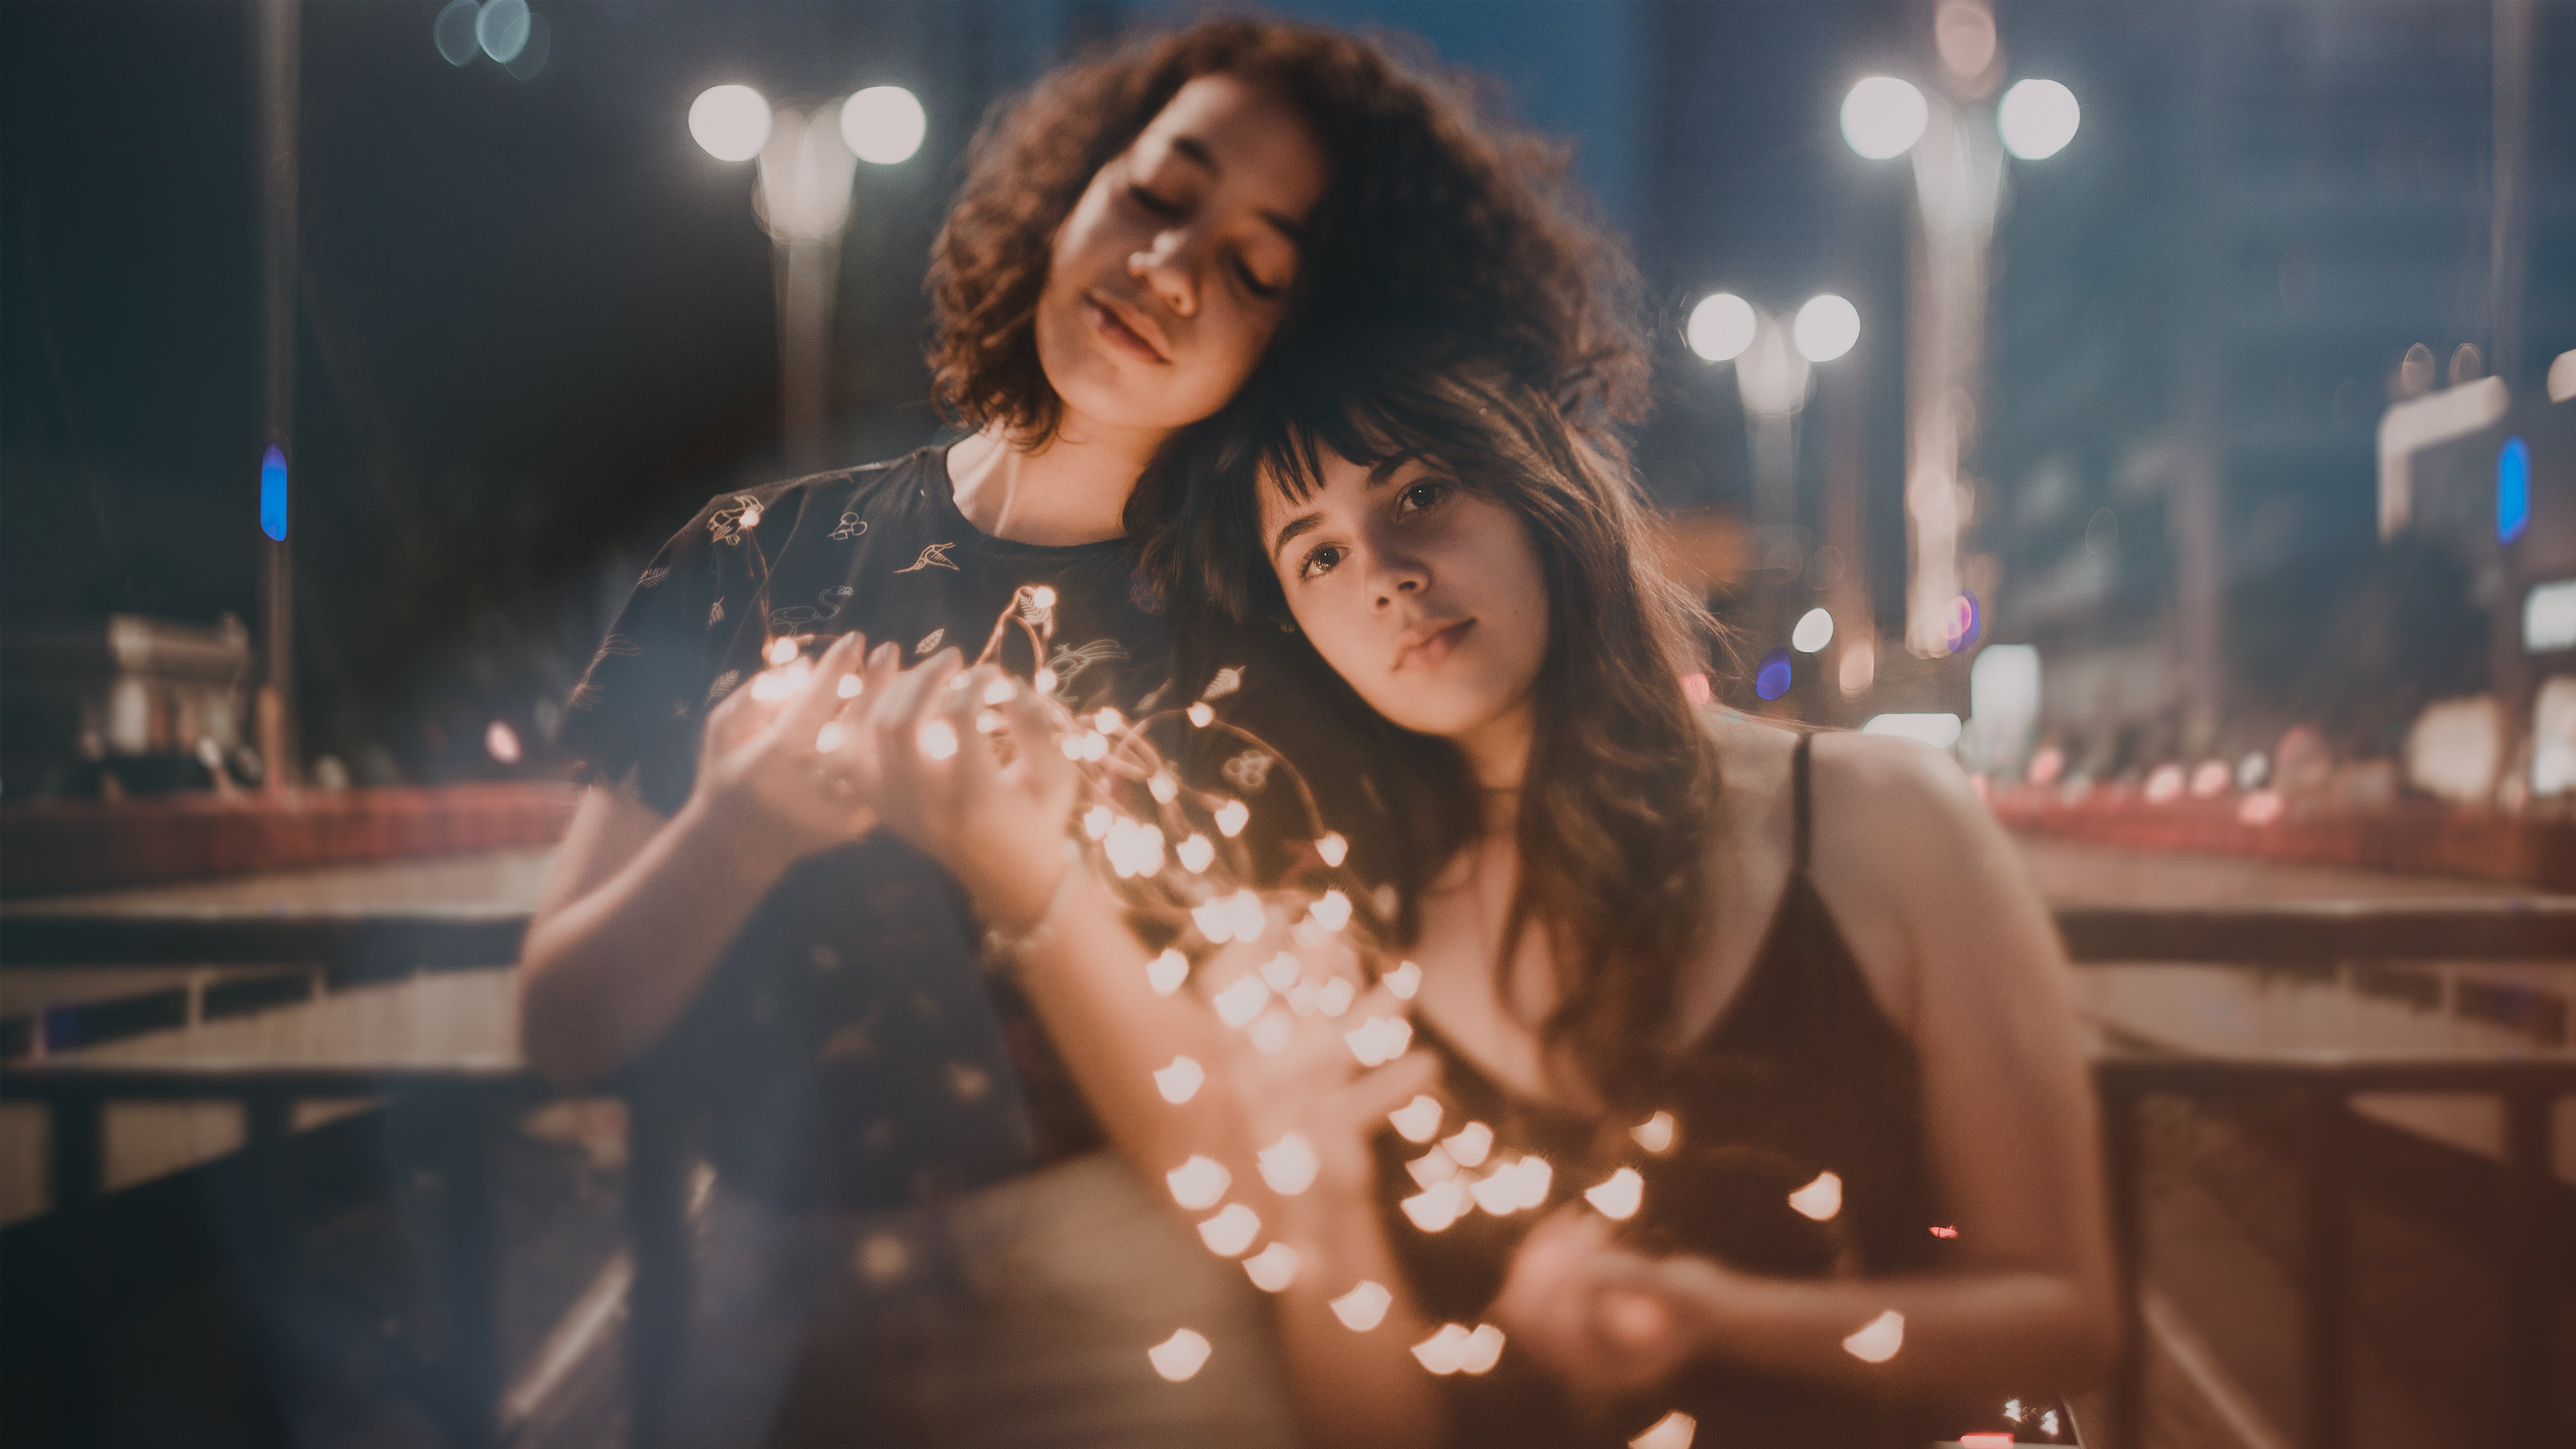 Selective Focus Photography of Two Women Holding String Lights Turned on